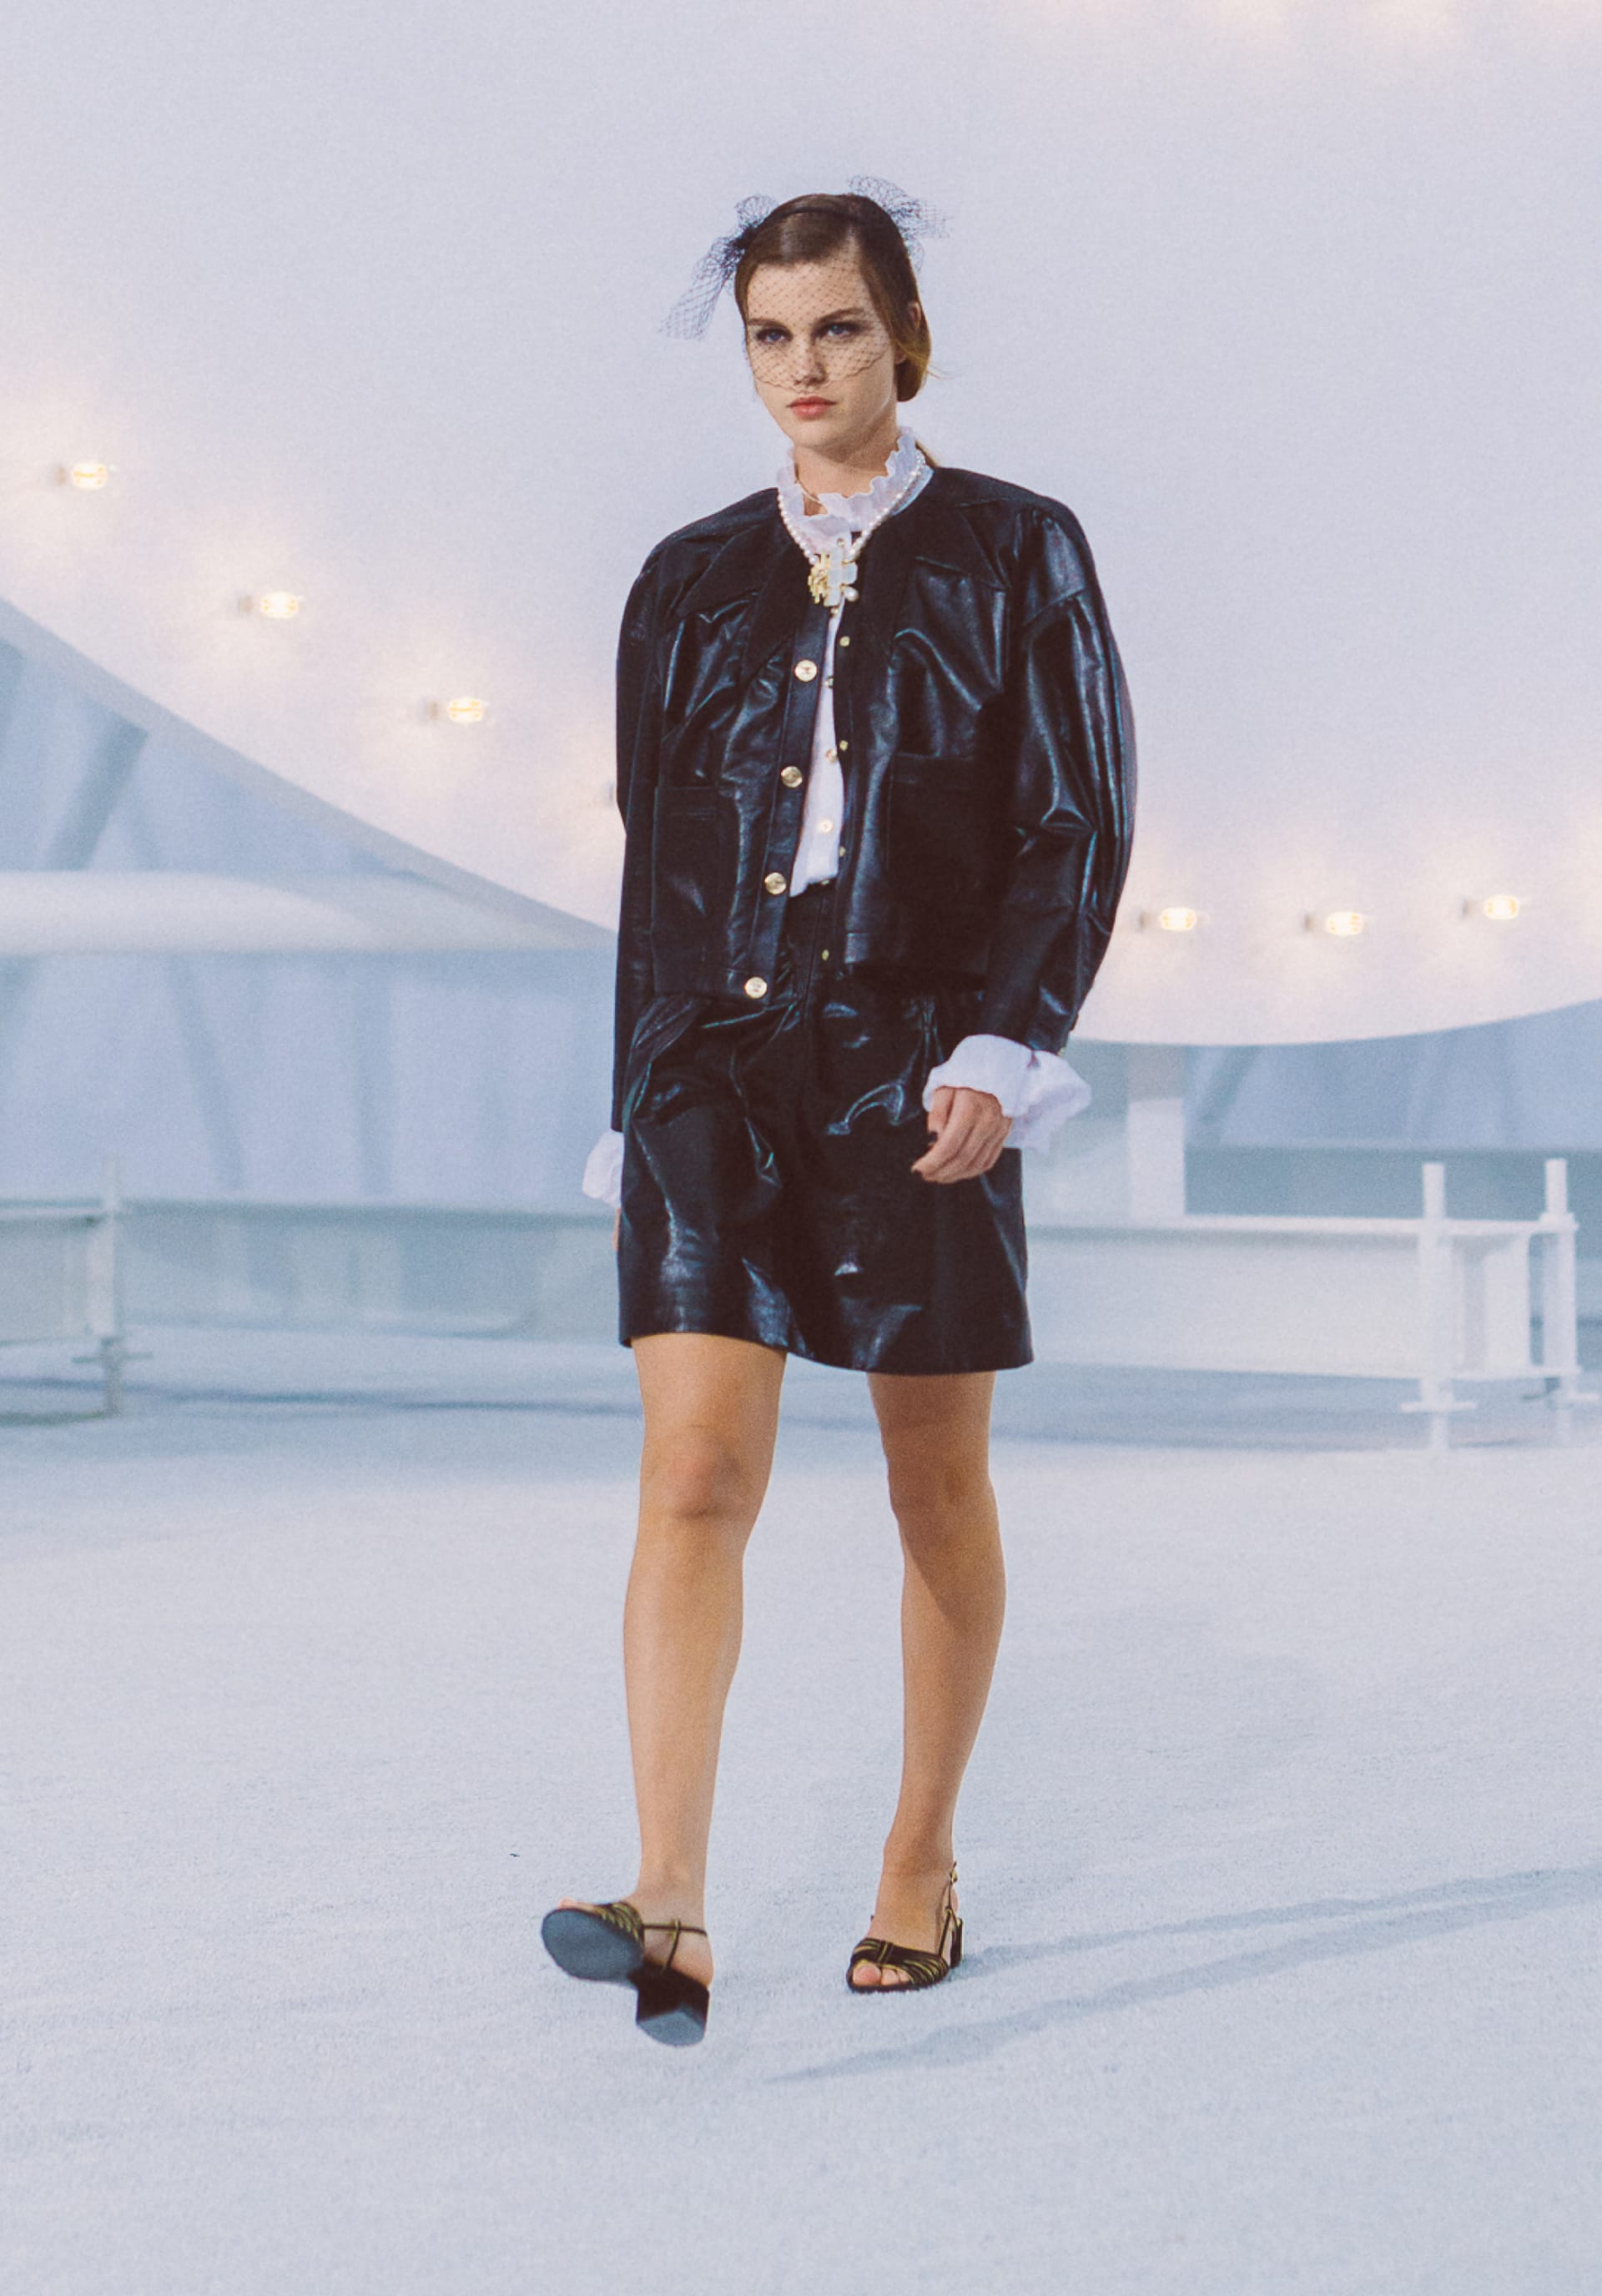 View 1 - Look23 - Spring-Summer 2021 - see full sized version